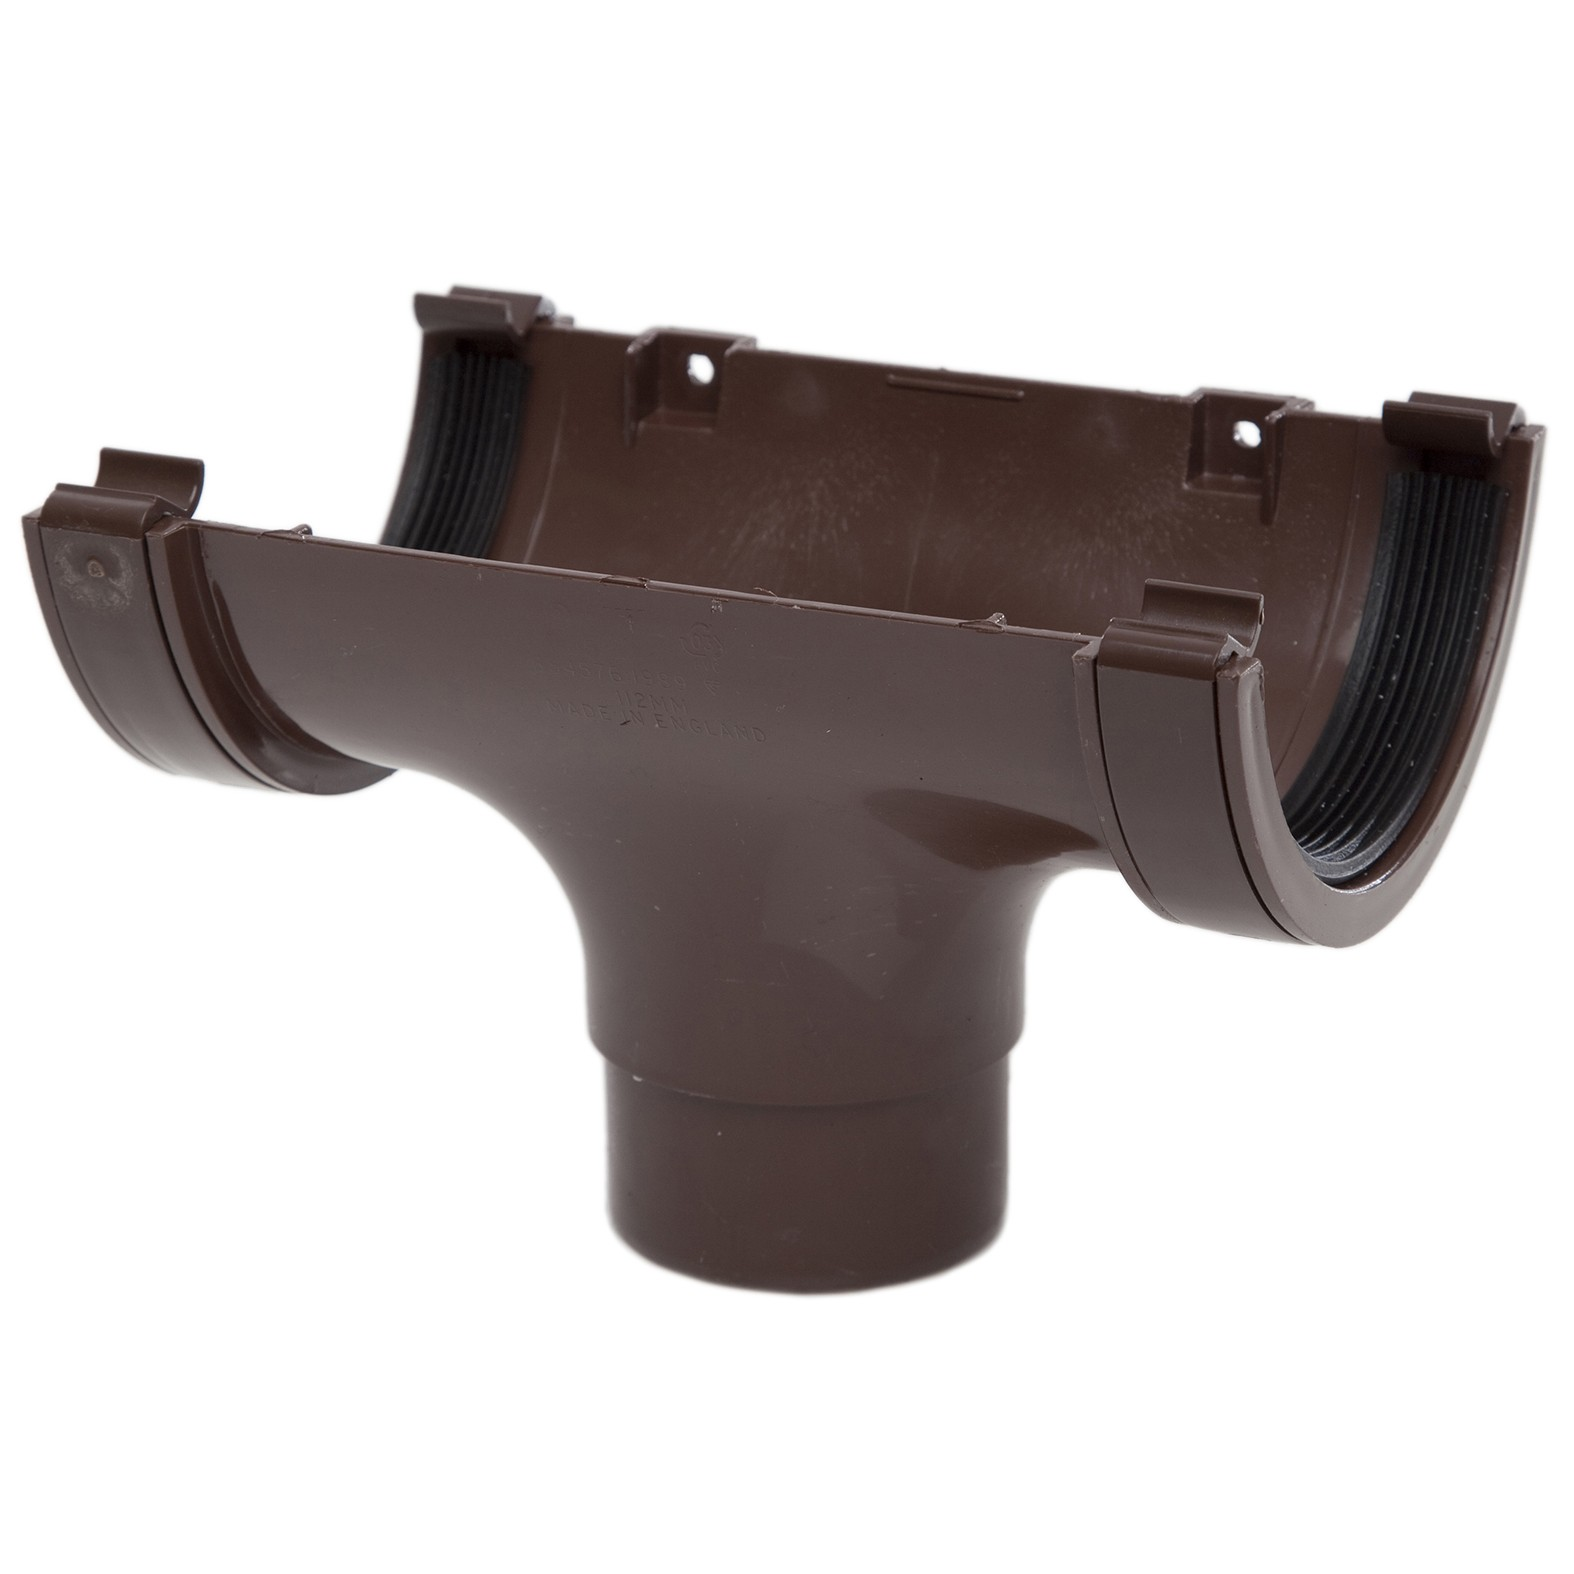 Polypipe 112mm Half Round Gutter Running Outlet - Brown